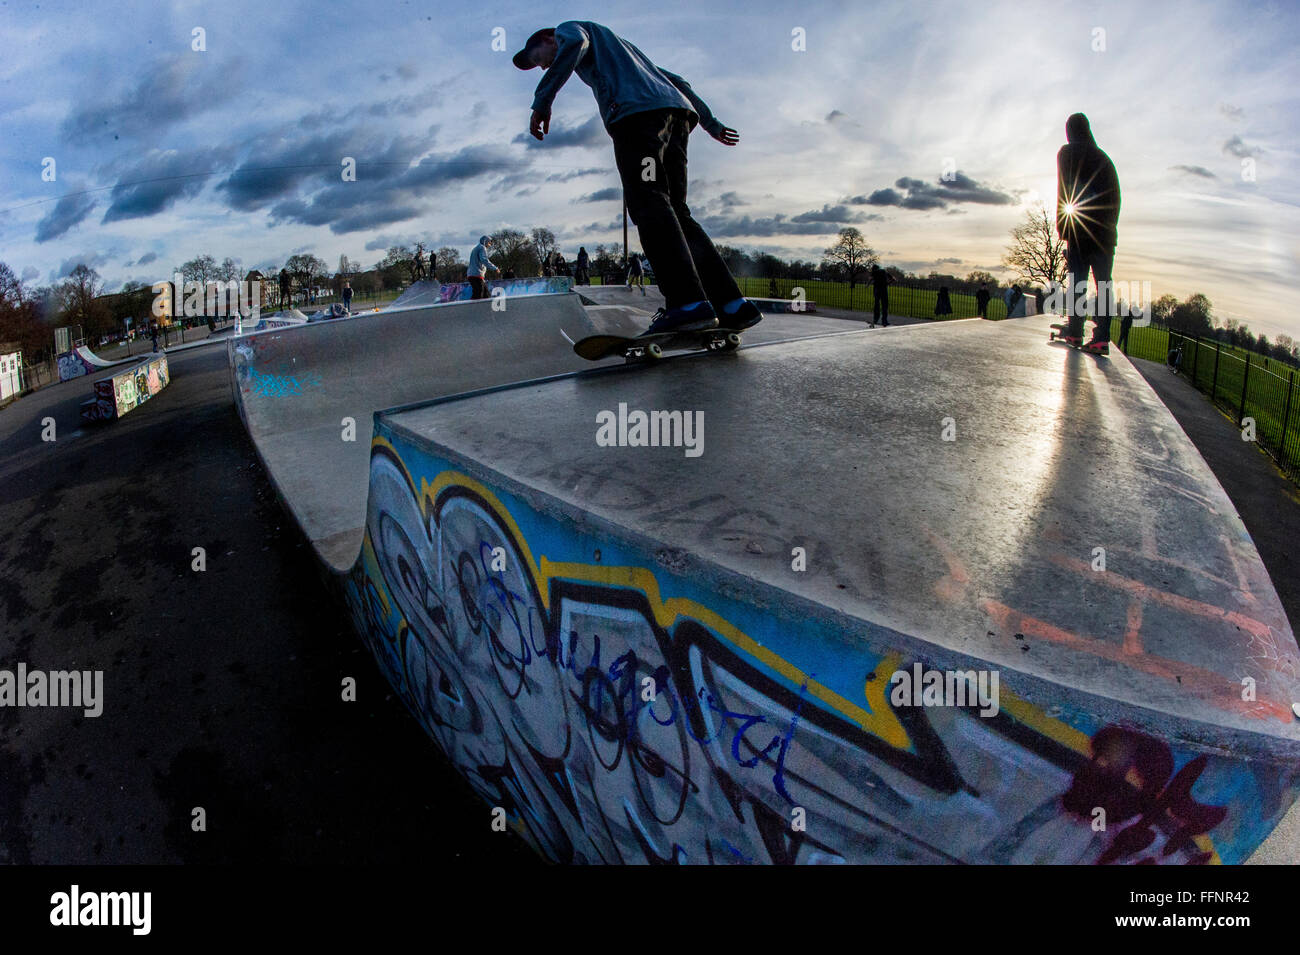 A skateboarder at Clapham Skatepark in South London - Stock Image